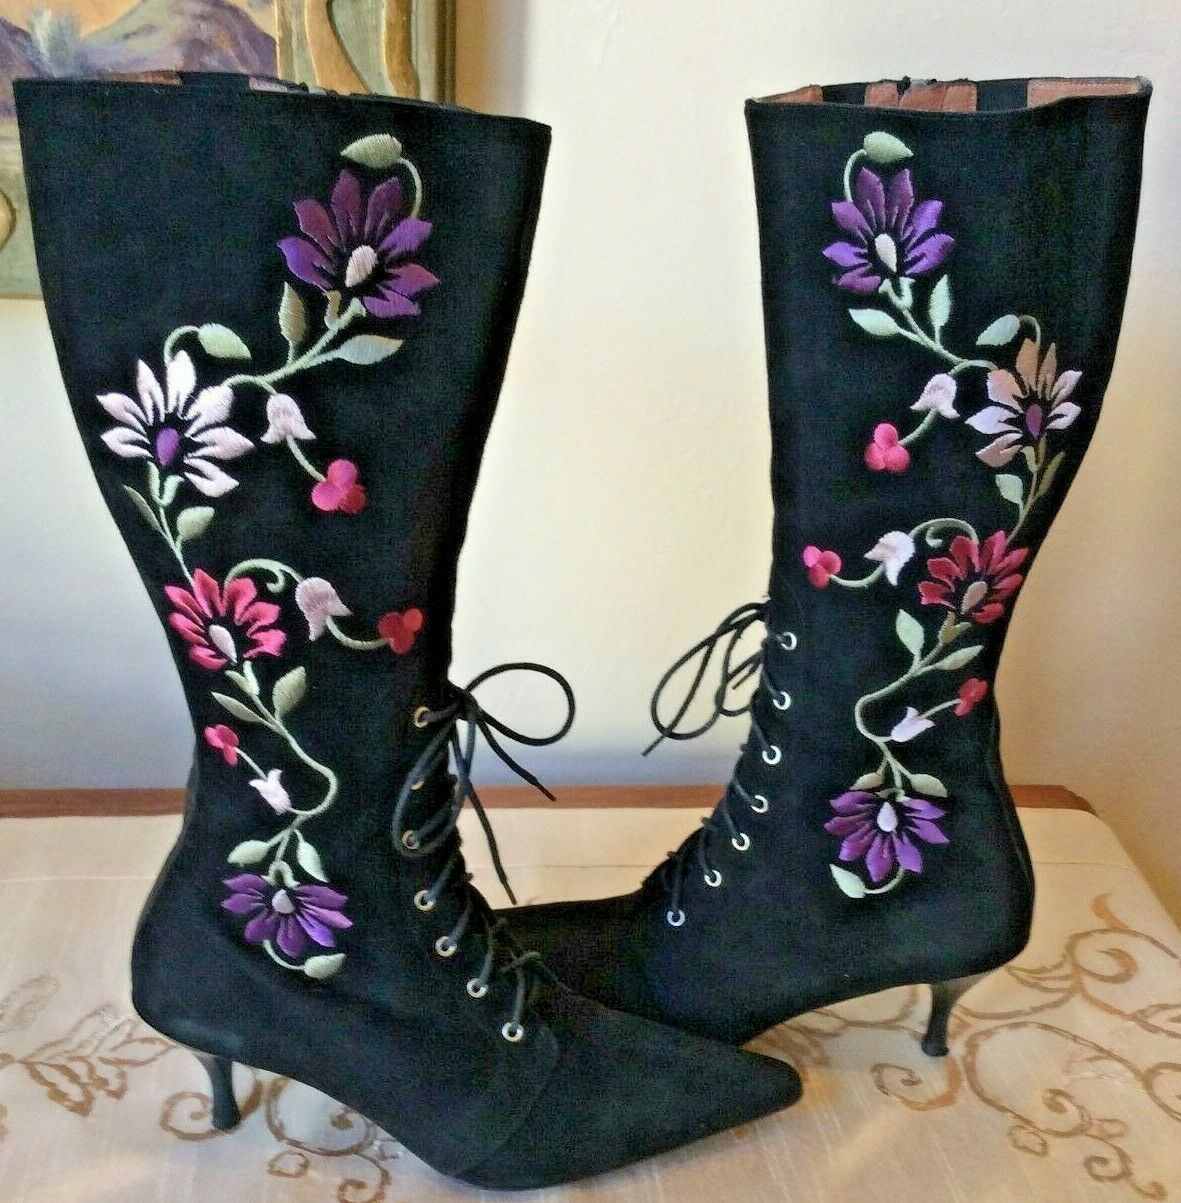 Donald Pliner Boots Women's Size 6 Suede Black Embroidered Lace Up Ruzyne Floral